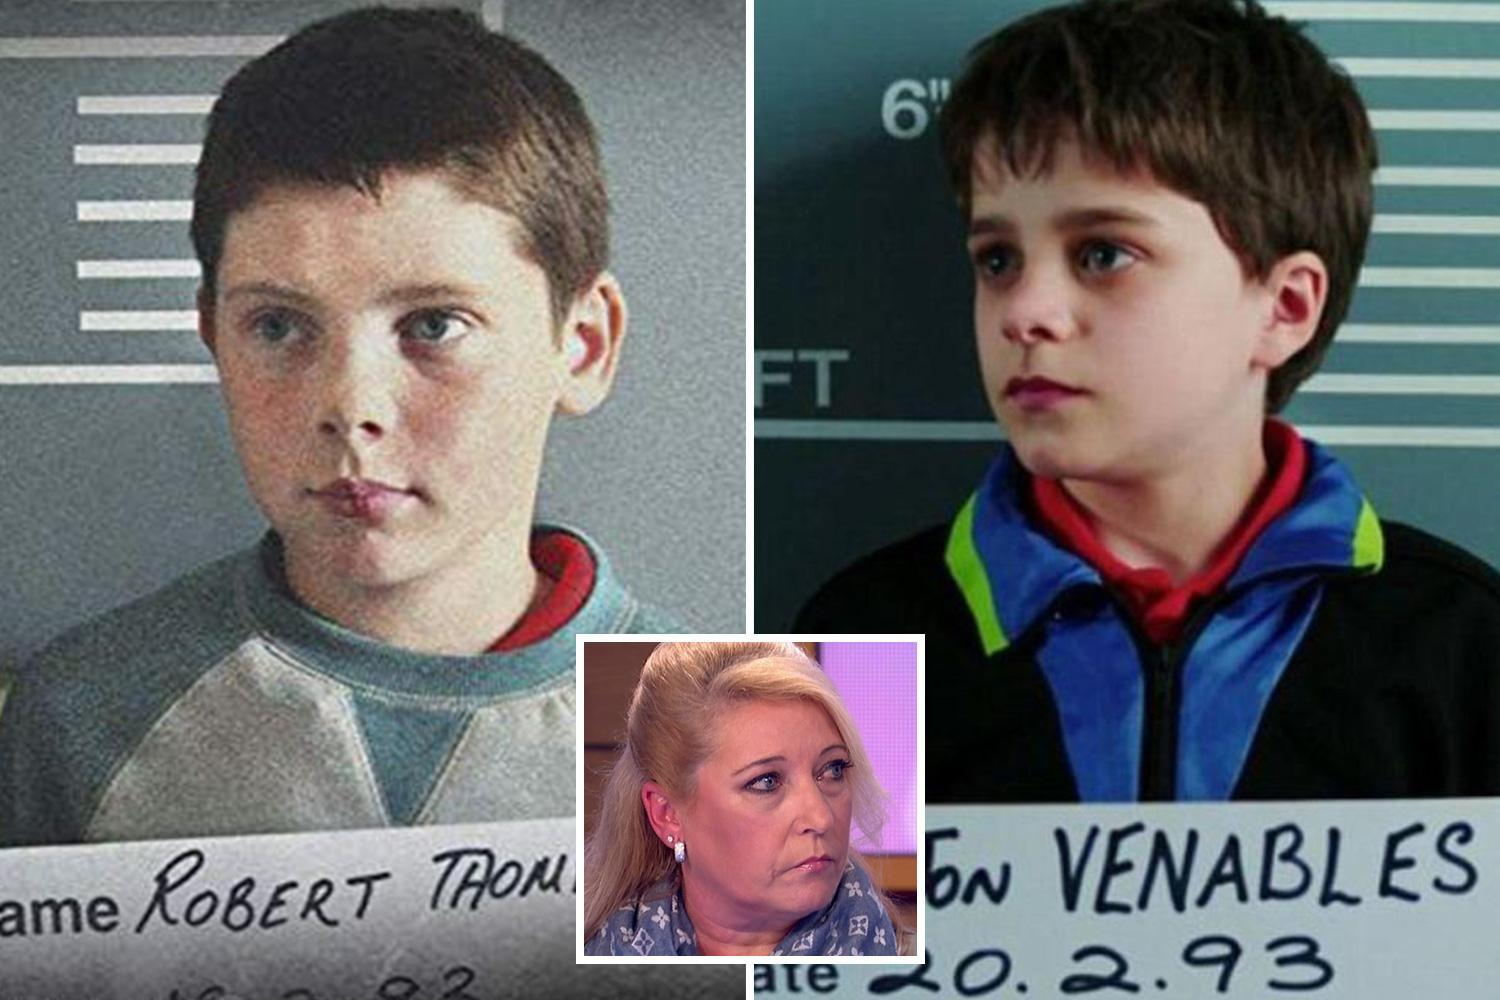 James Bulger's mum calls for boycott of 'Oscar-worthy' film on son's murder and accuses director of exploiting family's grief